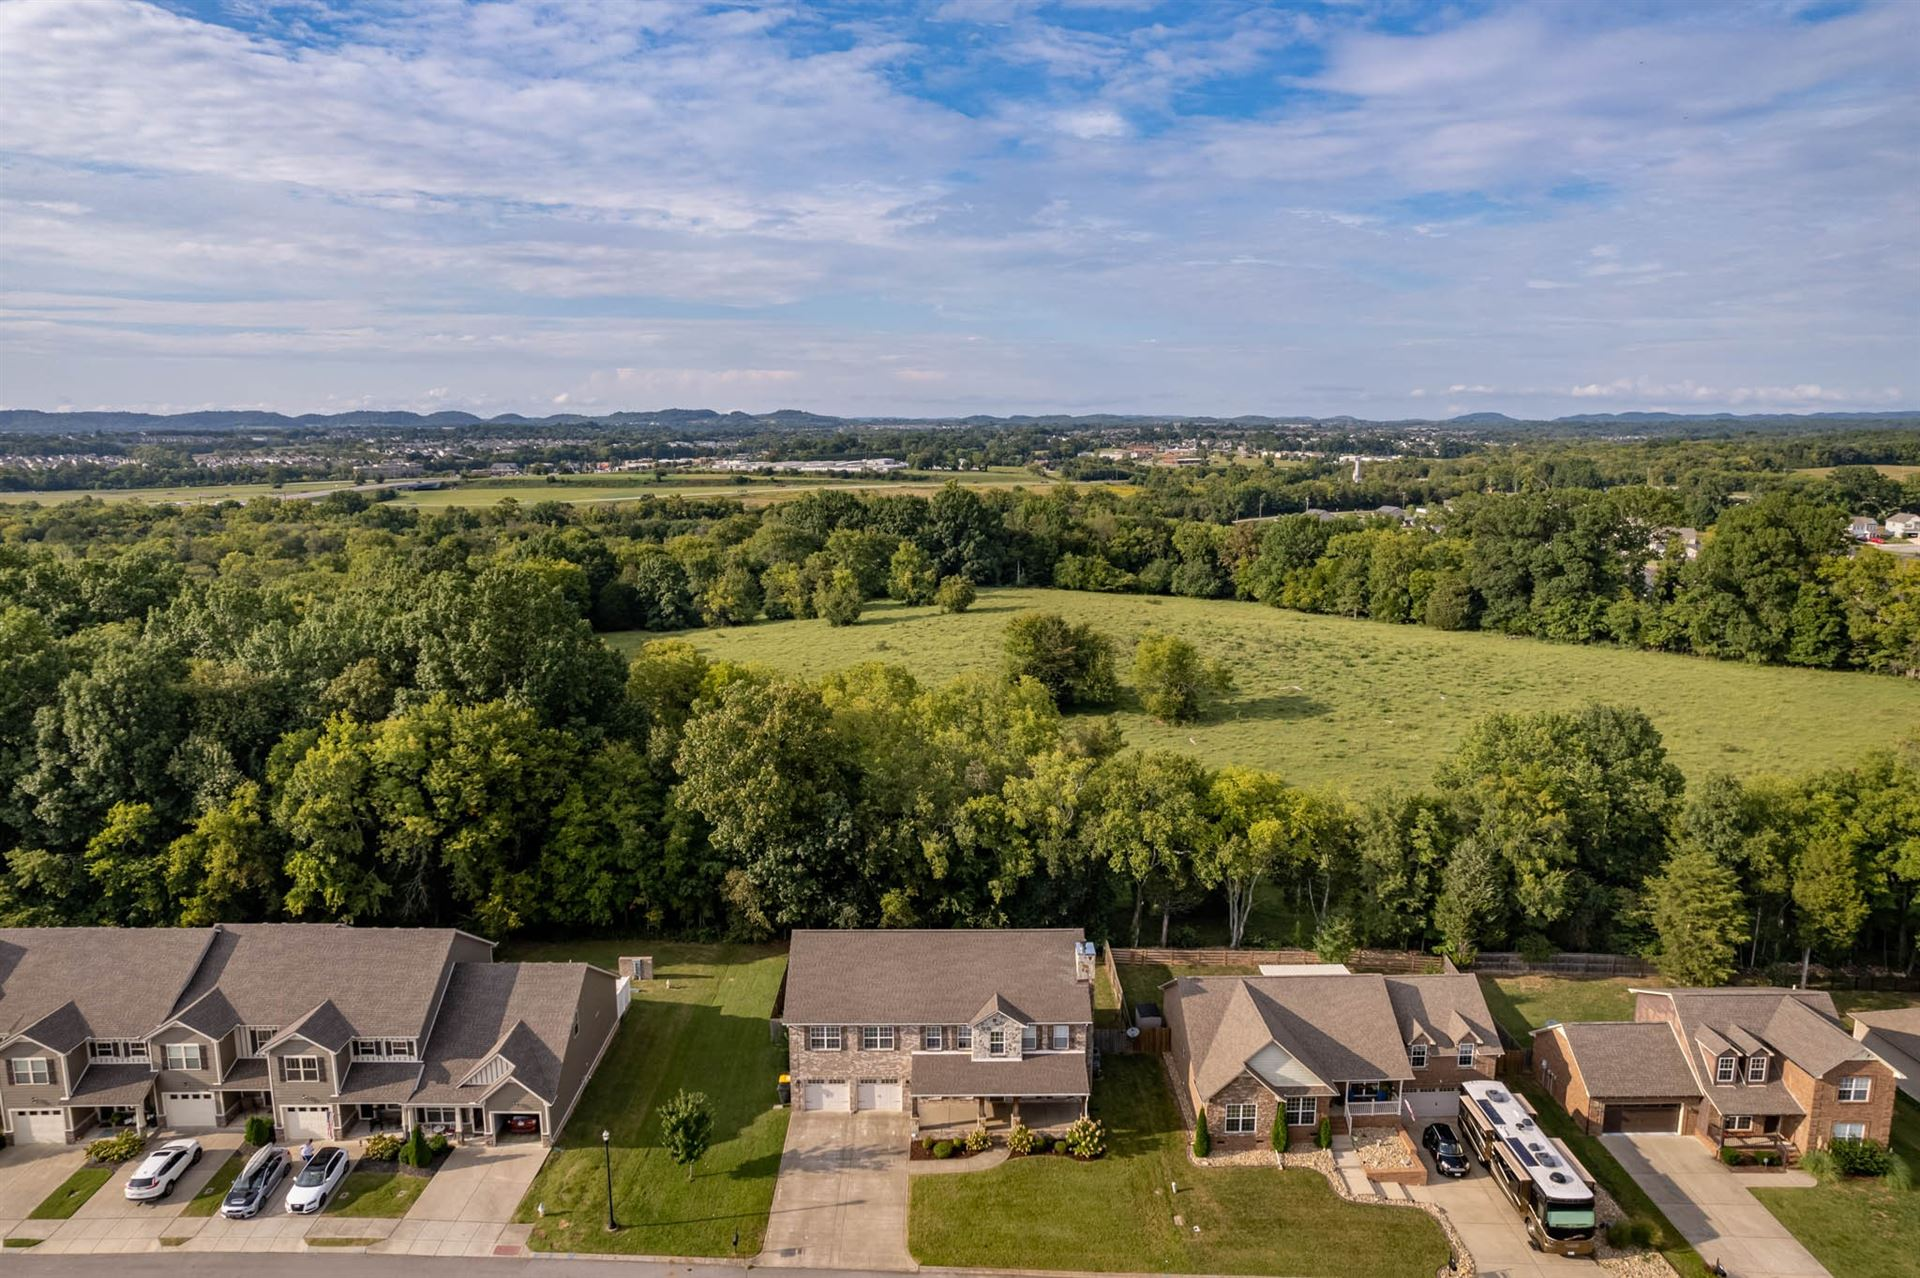 Photo of 1032 Neeley's Bend, Spring Hill, TN 37174 (MLS # 2291883)